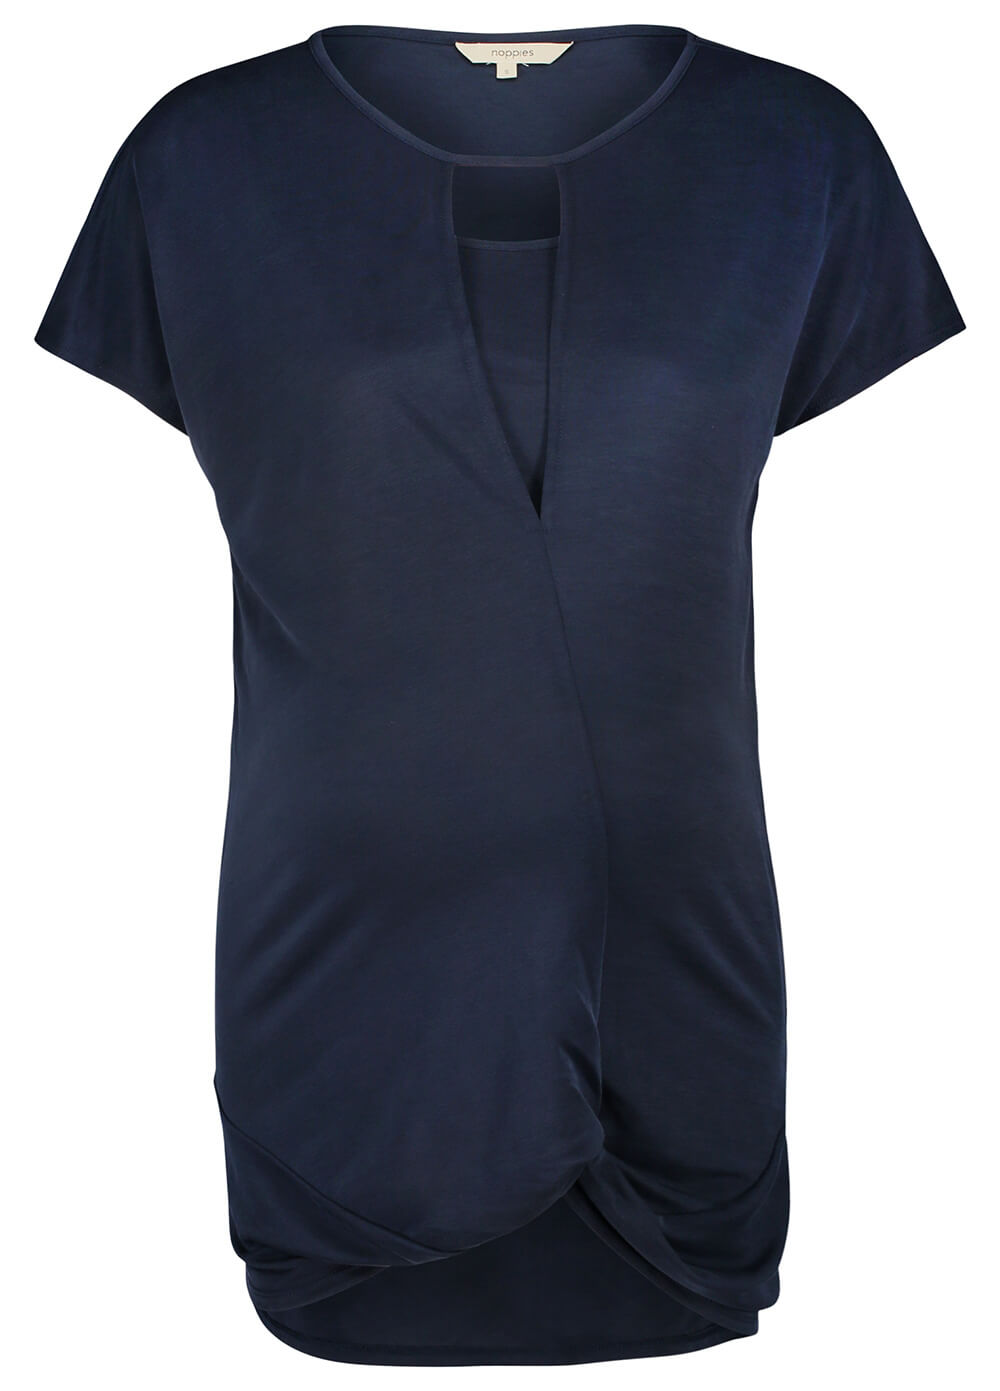 Adriana Maternity Nursing T-Shirt in Navy by Noppies